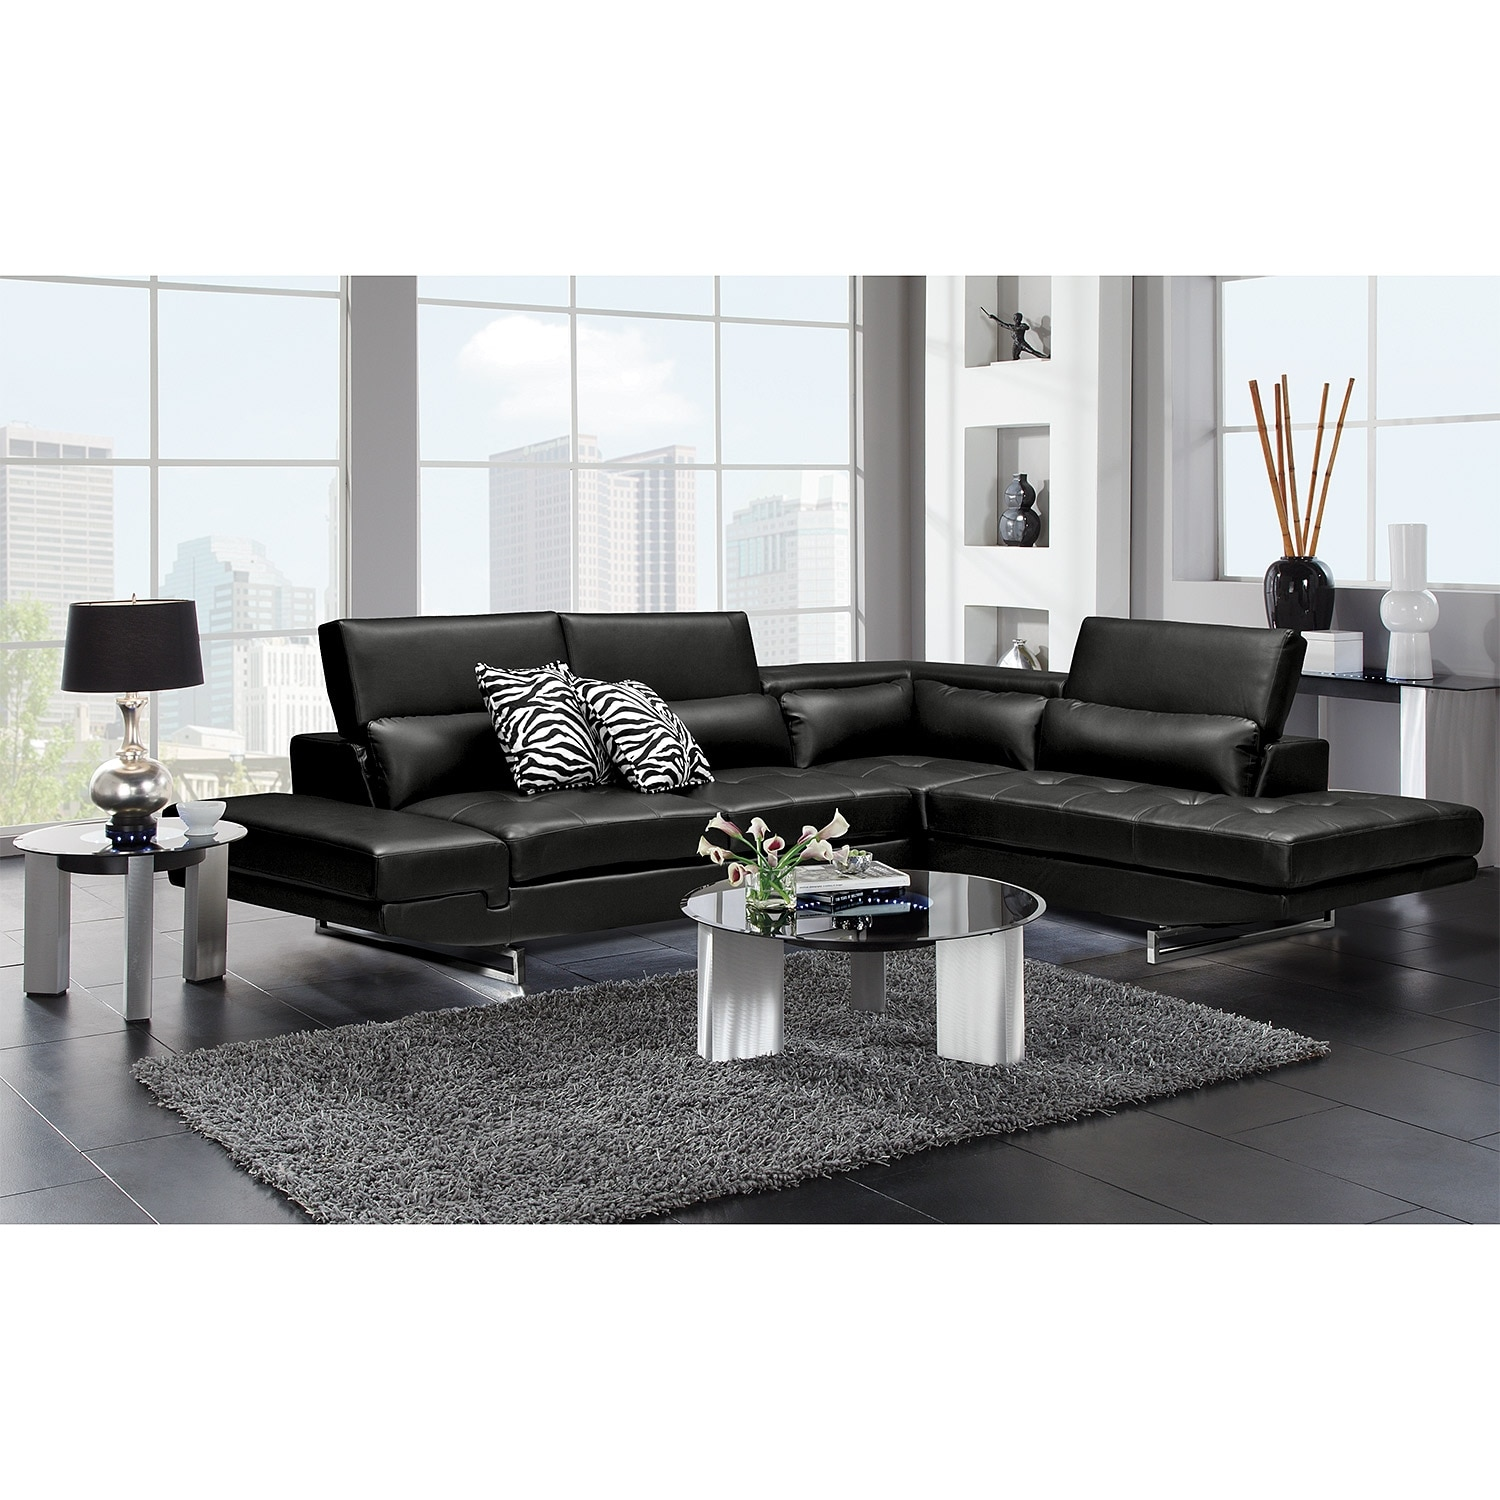 Madrid Ii Leather 2 Pc Sectional Value City Furniture